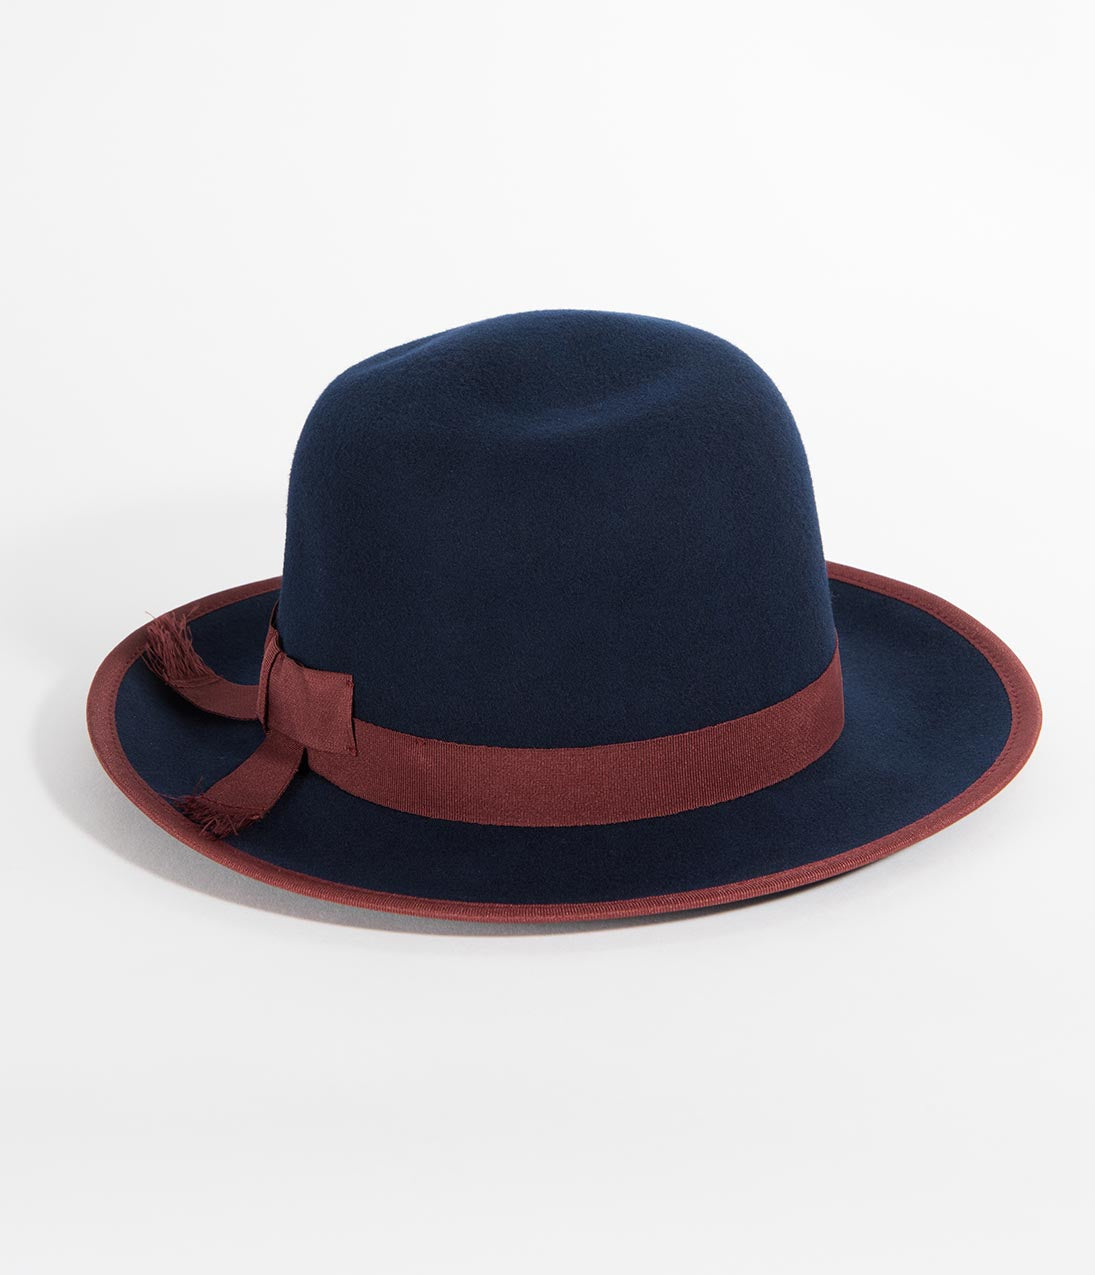 1940s Hats History Navy  Burgundy Wool Bowler Hat $42.00 AT vintagedancer.com